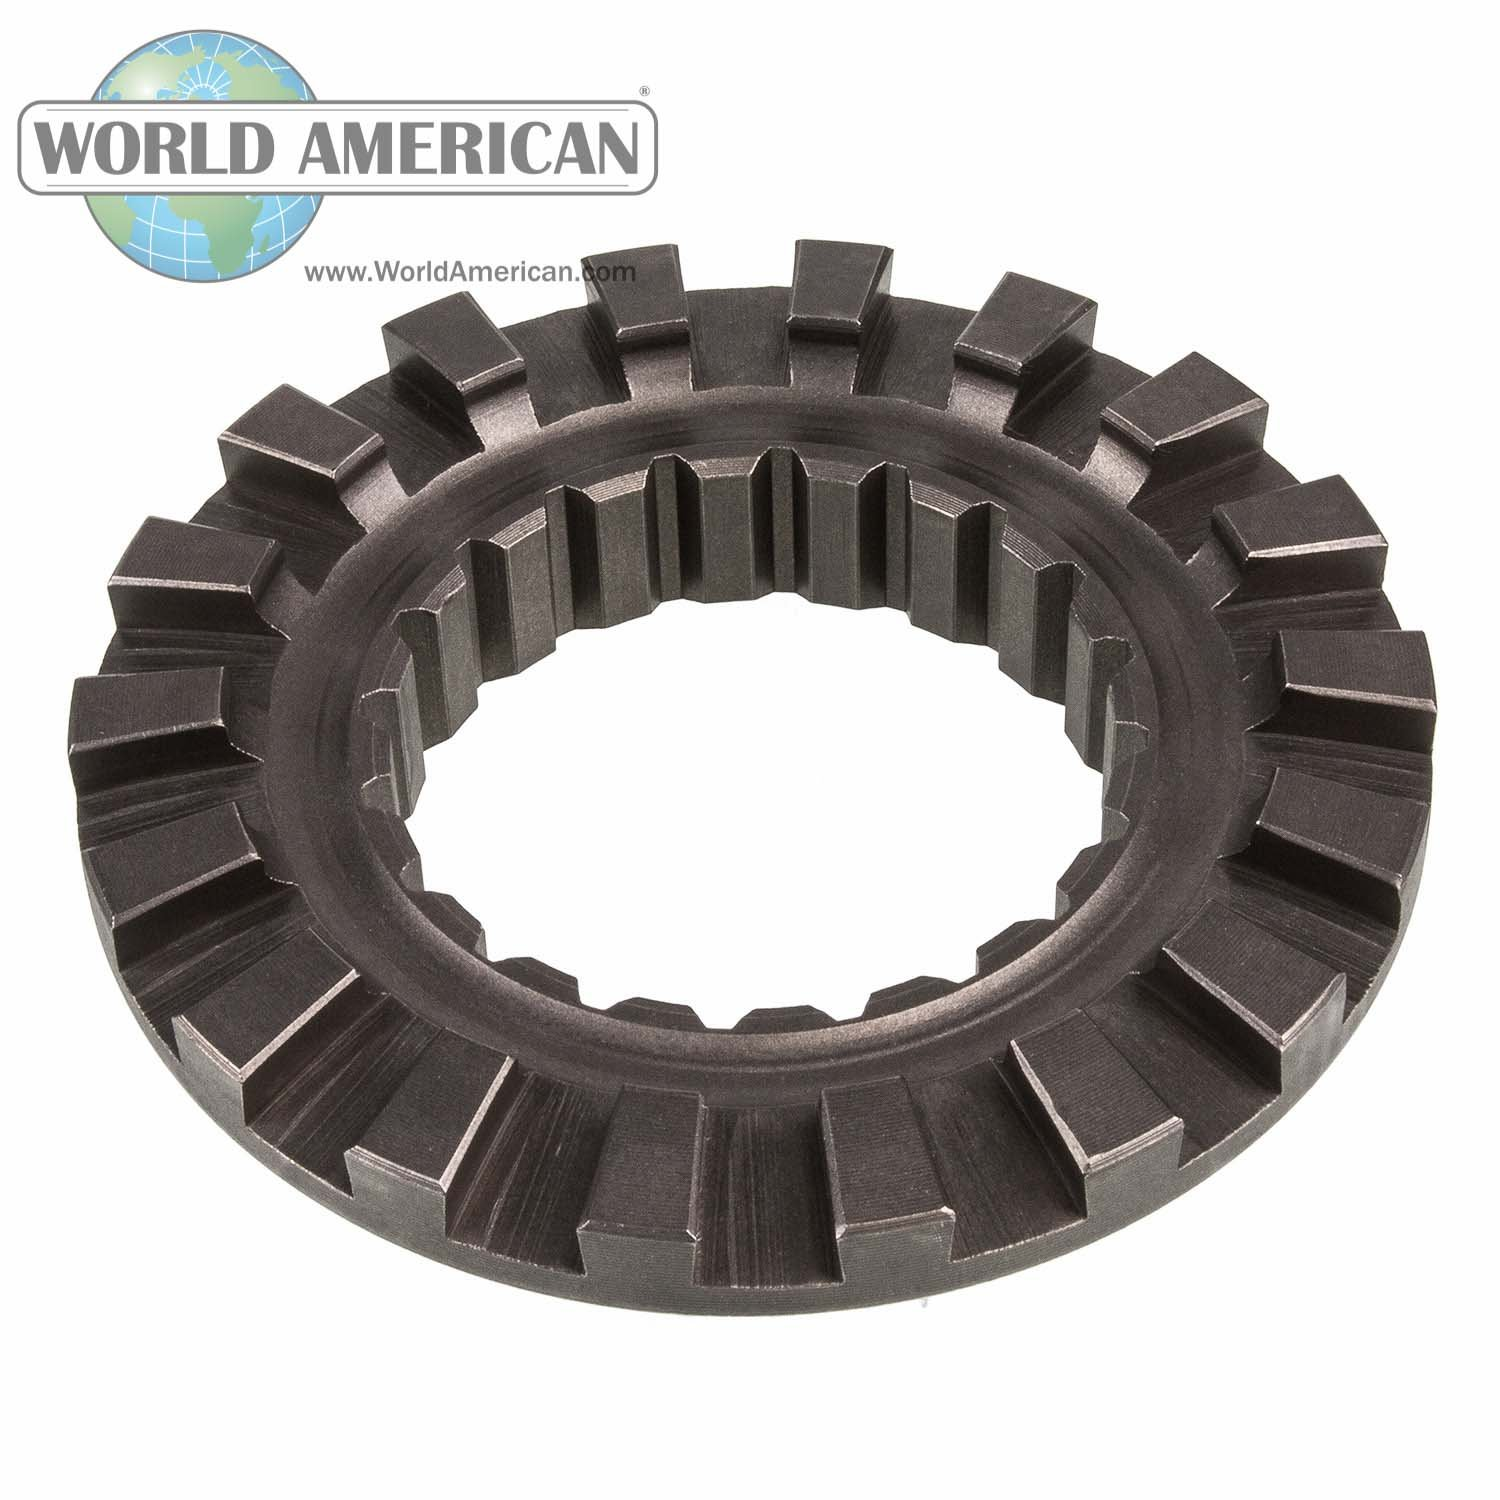 World American 128016 128016 L/O Sldng Clutch DS,Dt,381